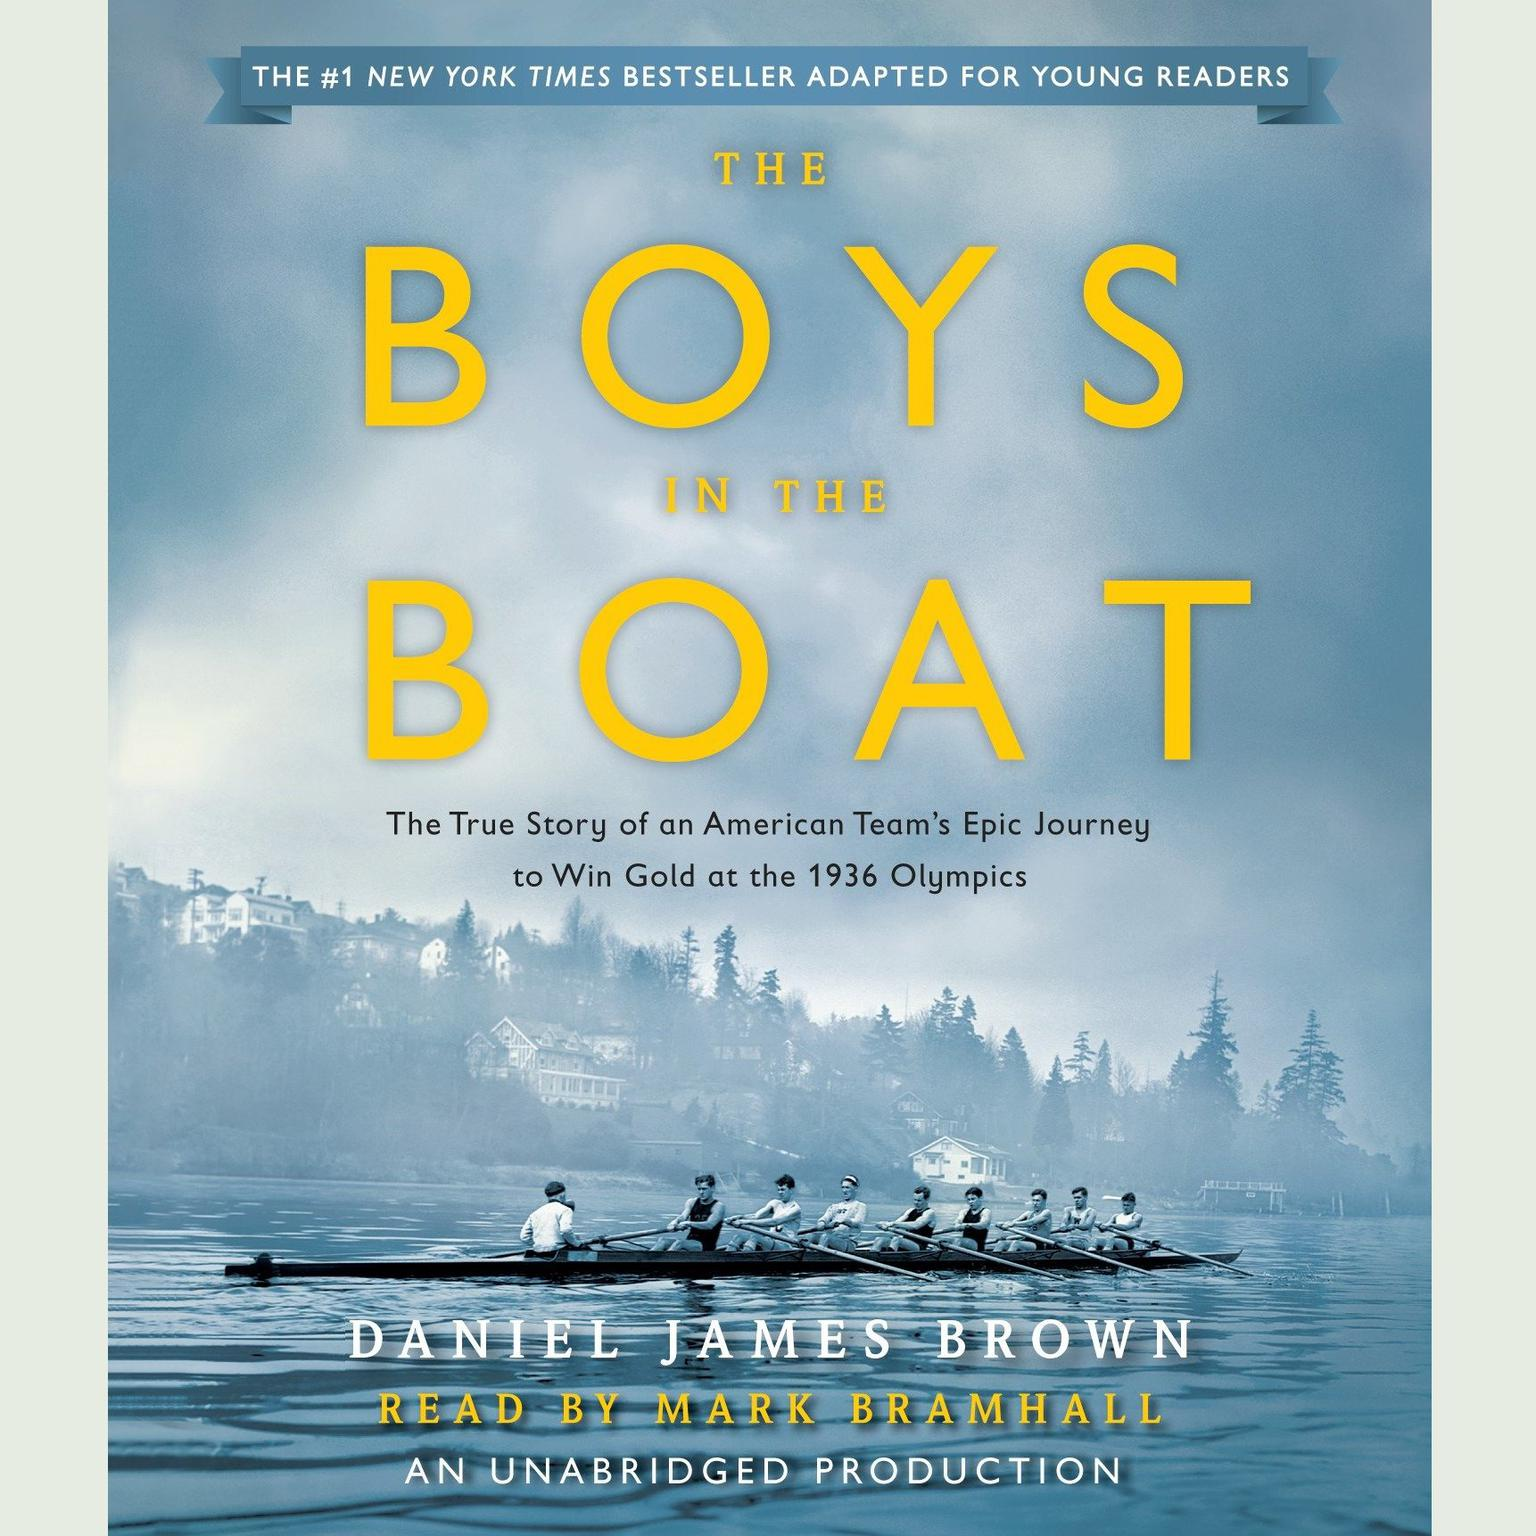 Printable The Boys in the Boat (Young Readers Adaptation): The True Story of an American Team's Epic Journey to Win Gold at the 1936 Olympics Audiobook Cover Art